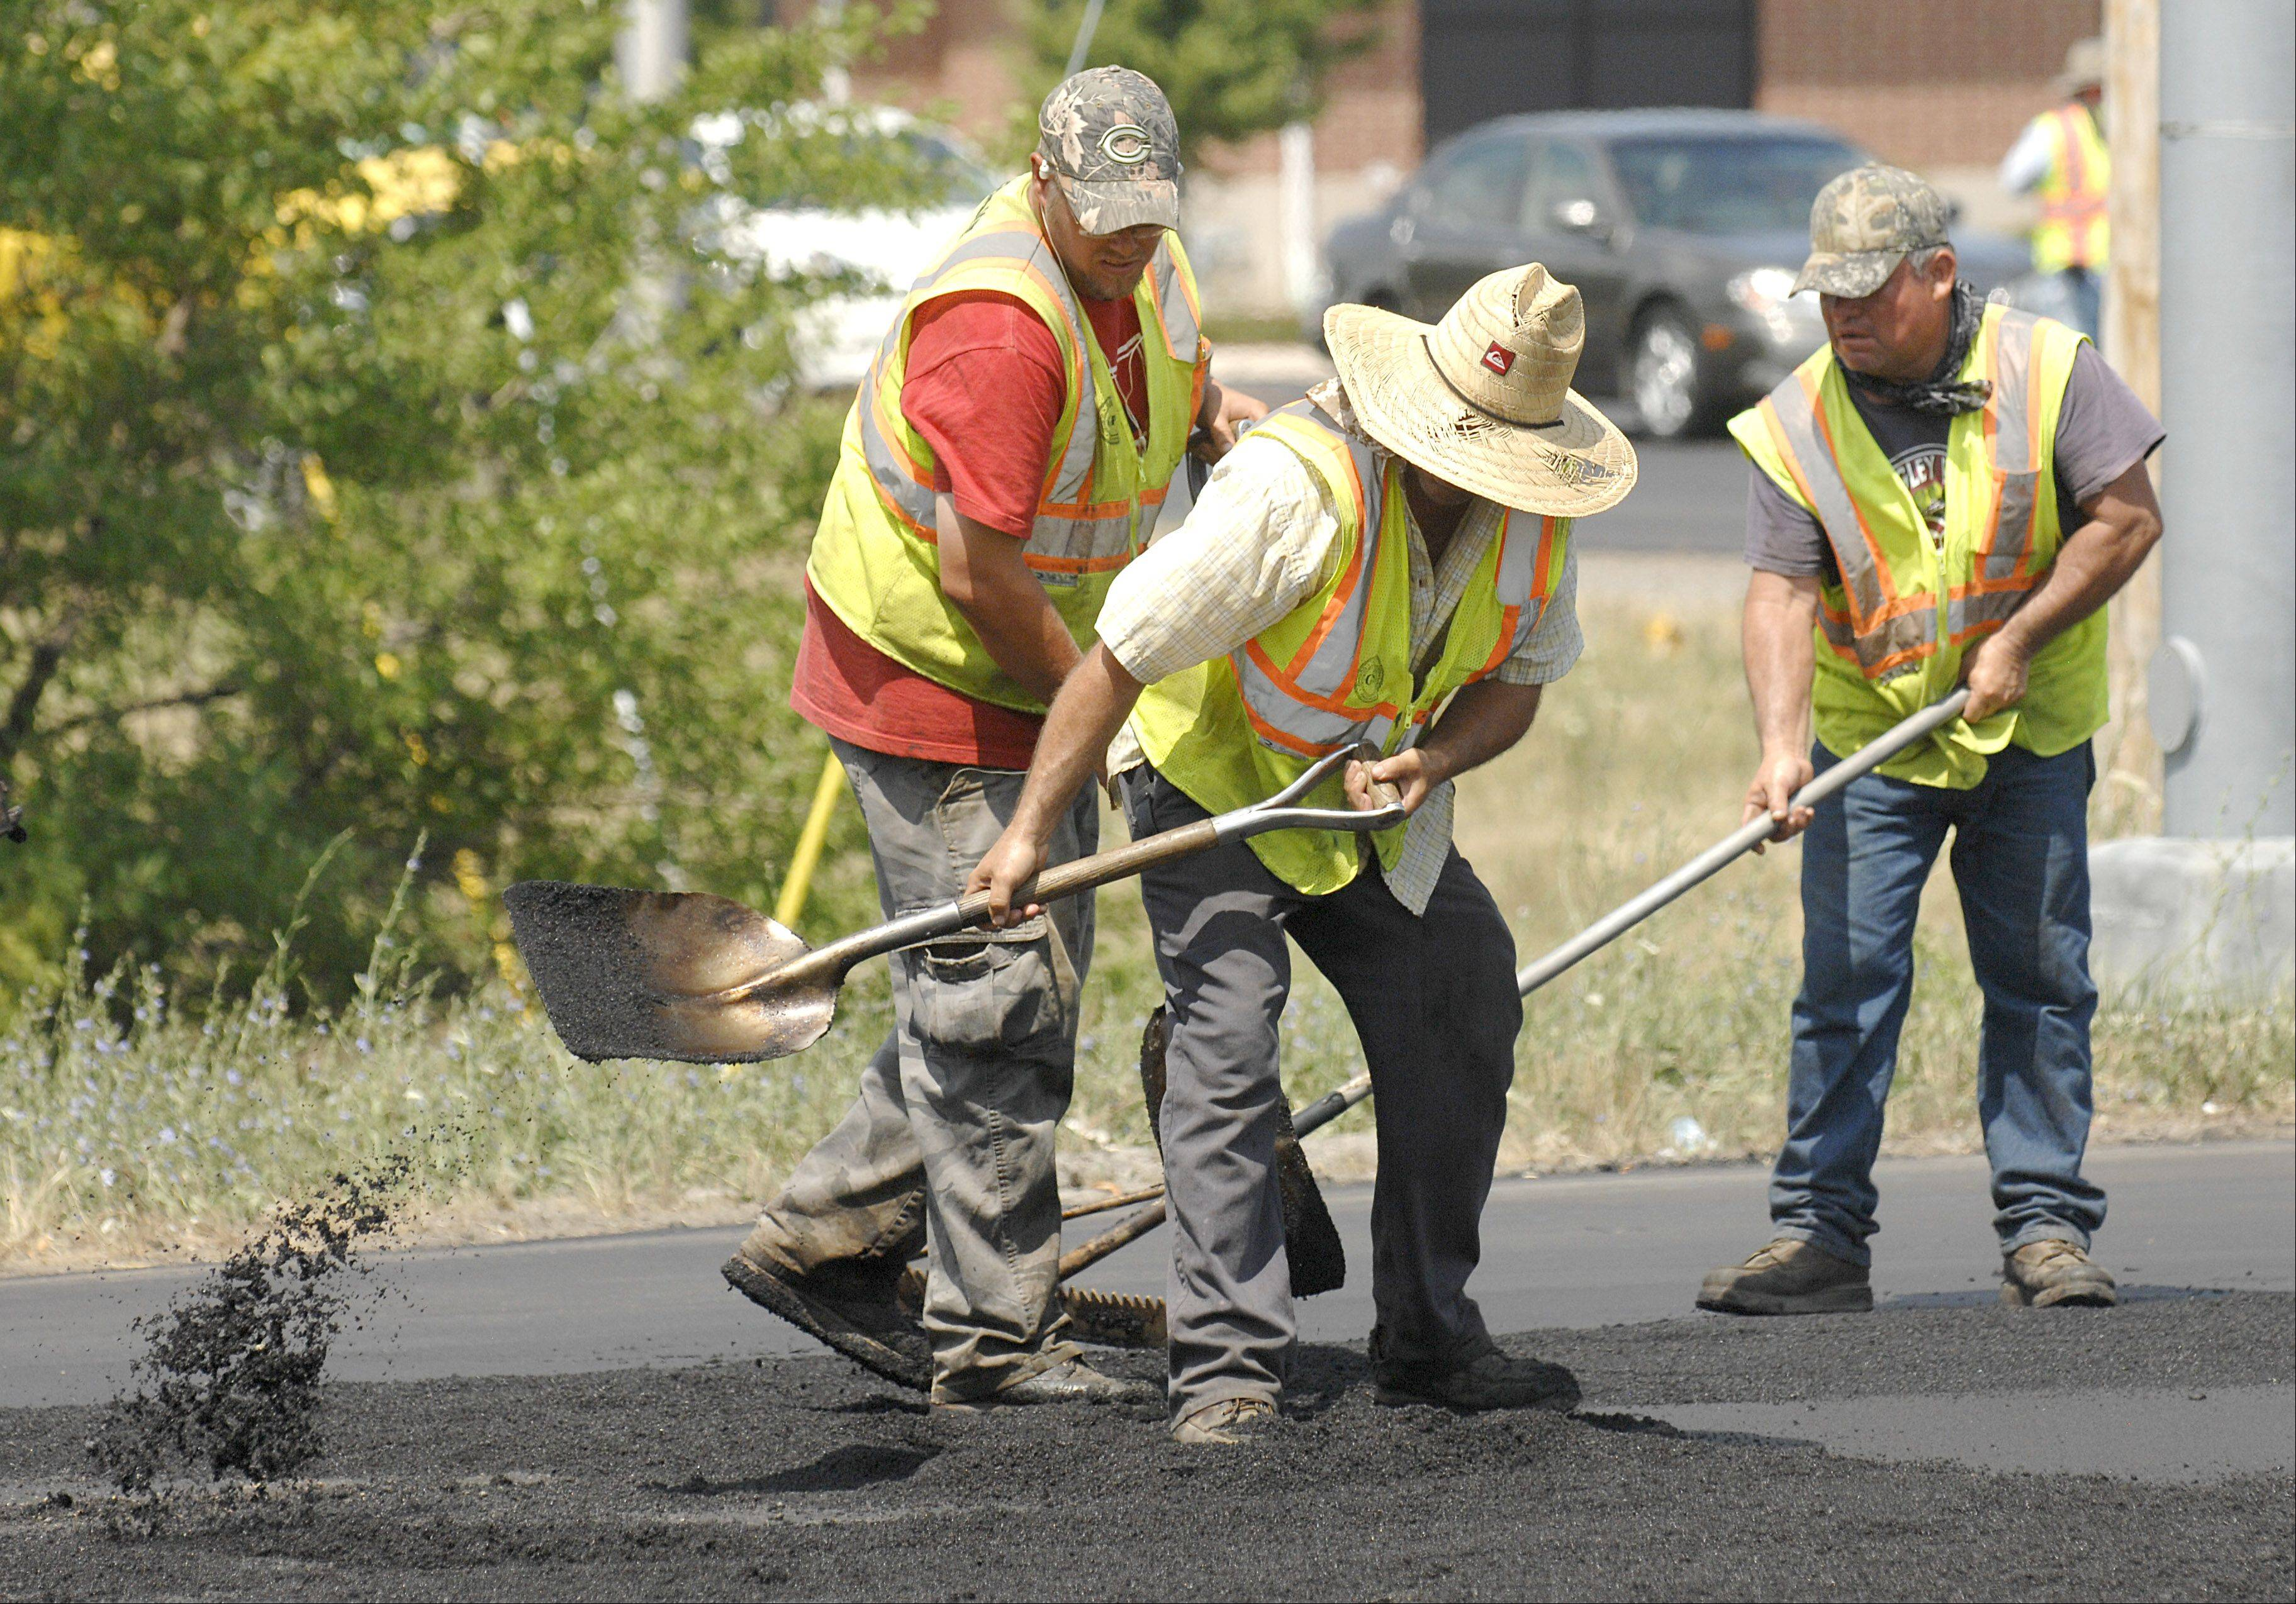 Workers with Curran Contracting Company of Crystal Lake spread hot asphalt at the intersection of Routes 38 and 47 in Elburn on Tuesday.